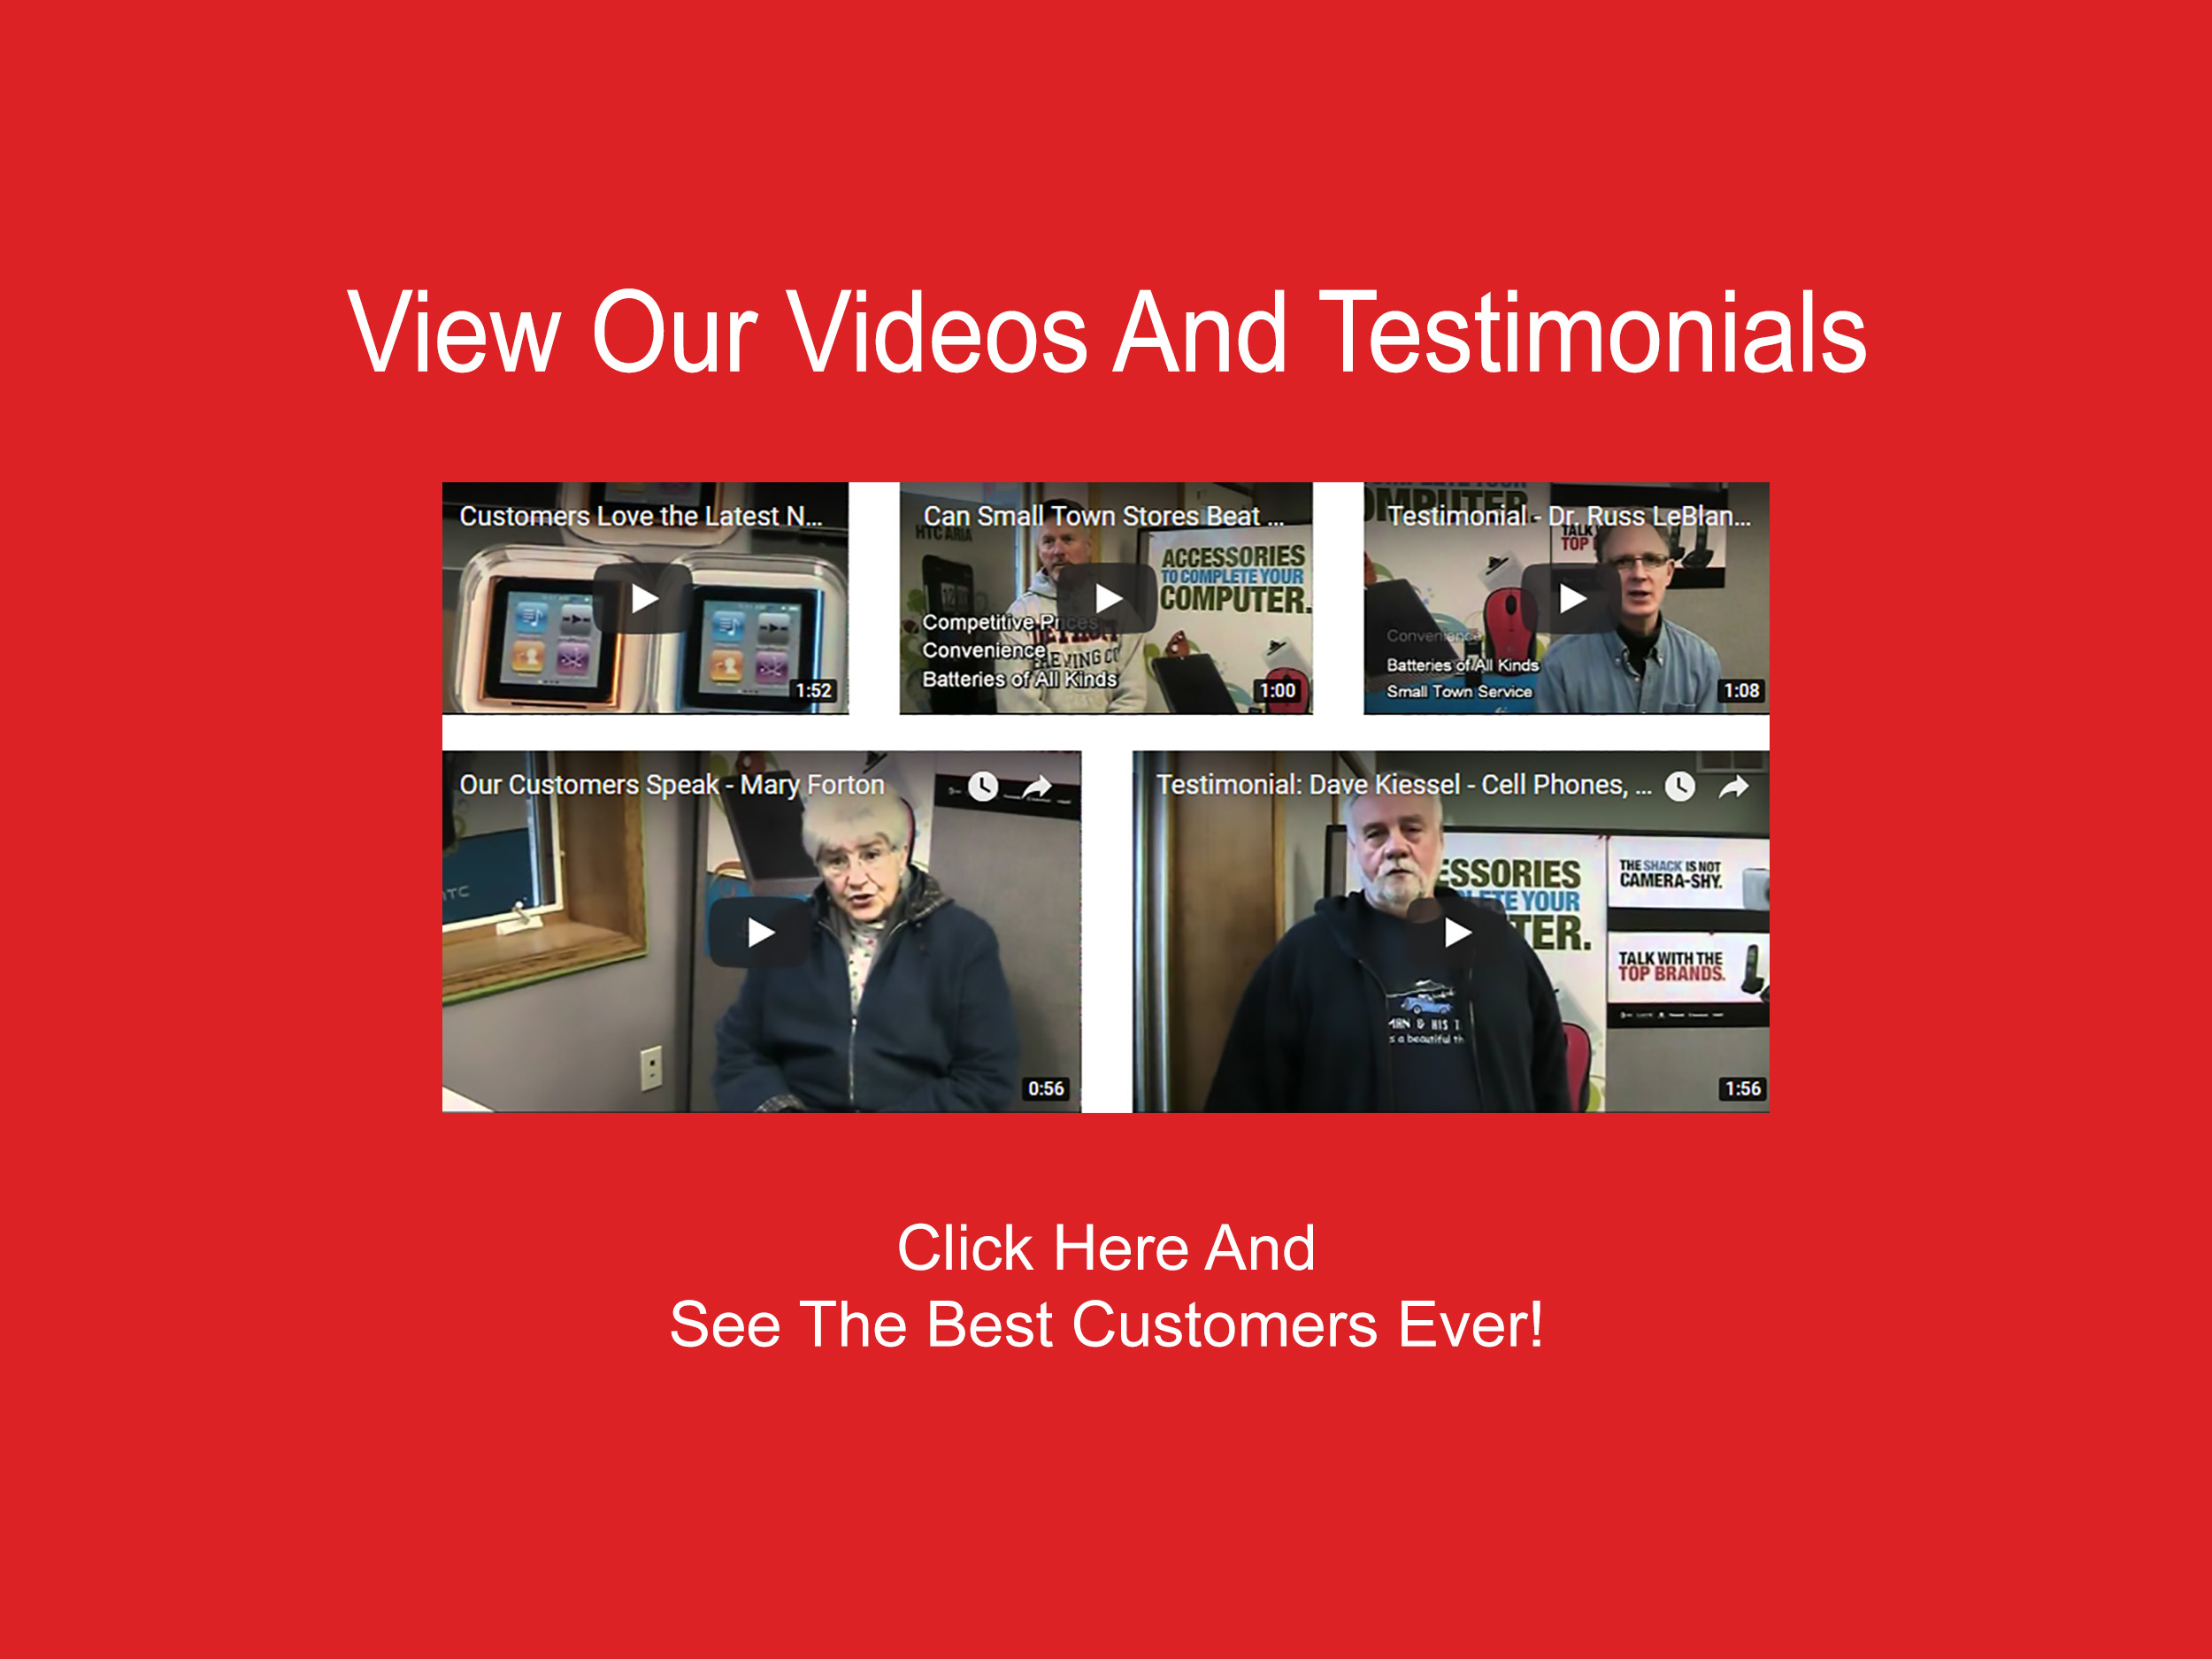 View our videos and testimonials.